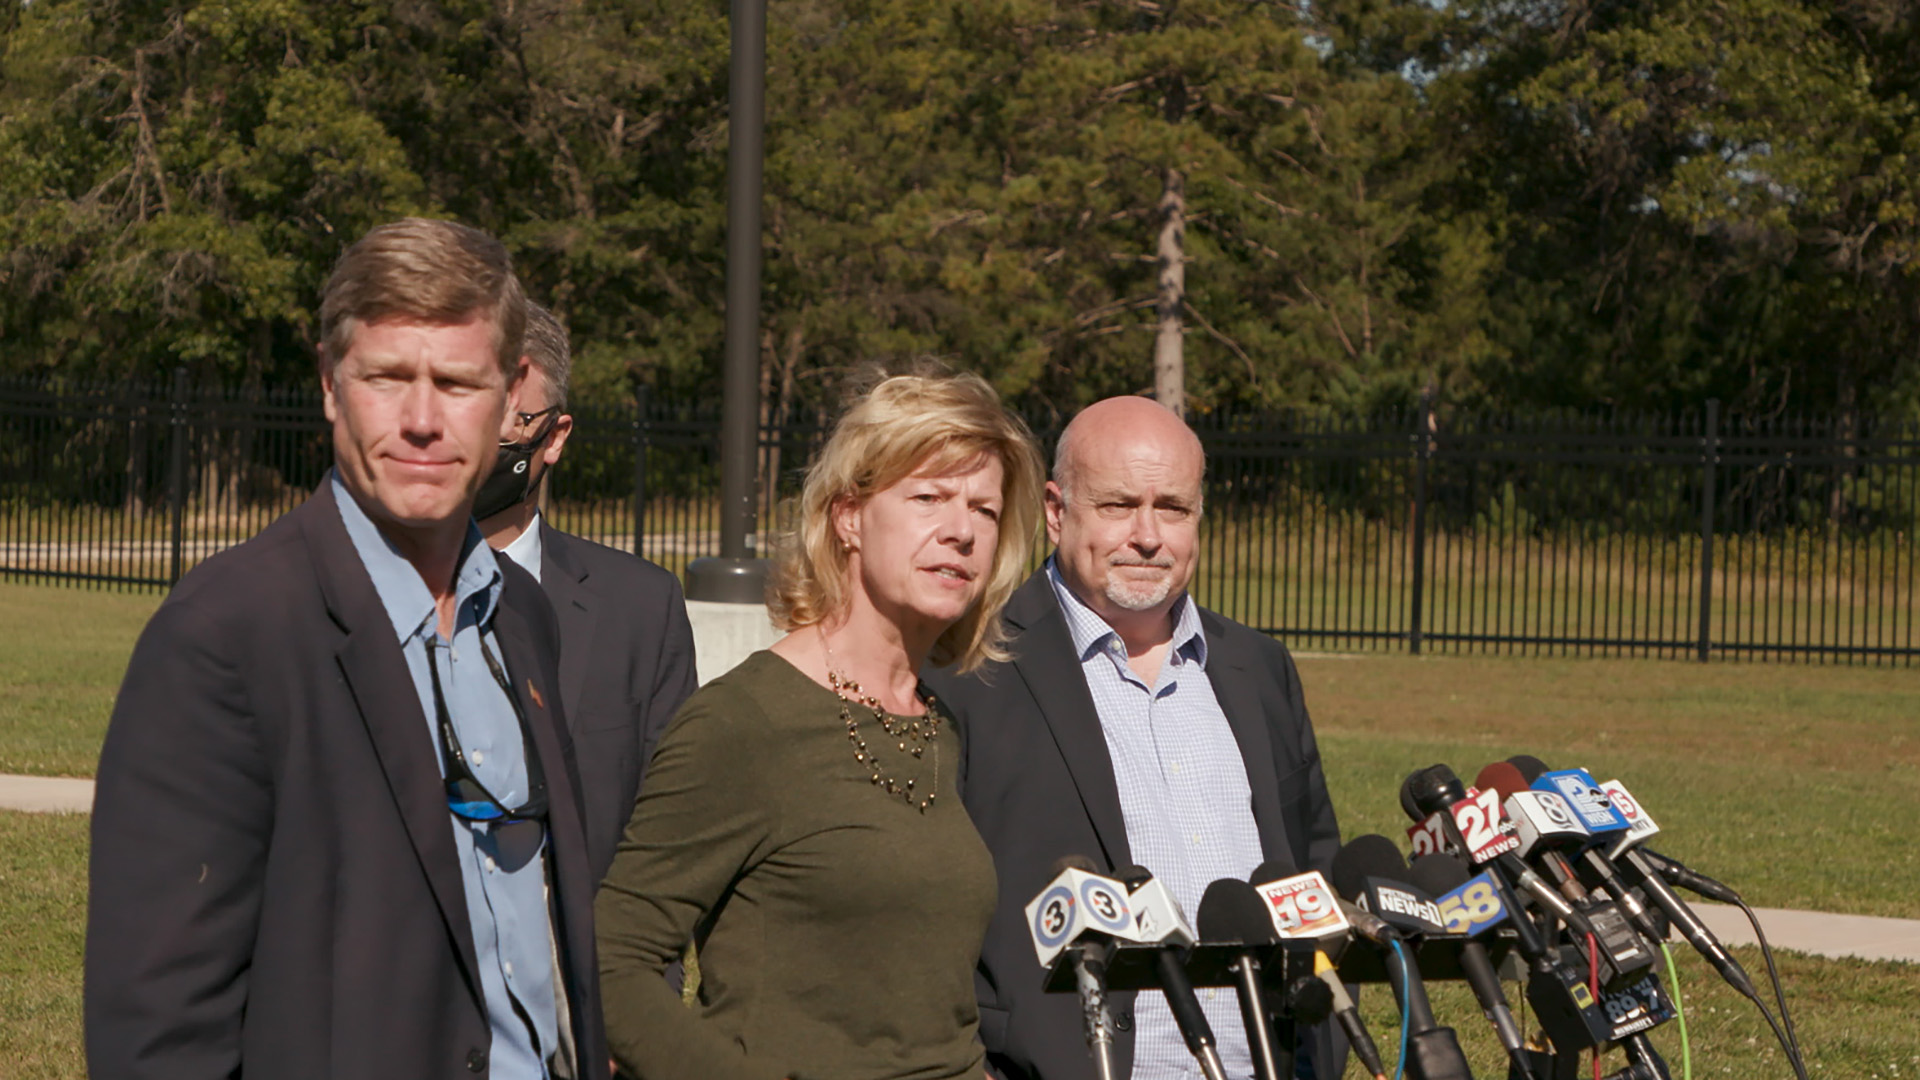 Ron Kind, Tammy Baldwin and Mark Pocan stand in front of microphones at a podium in front of a wrought-iron fence.